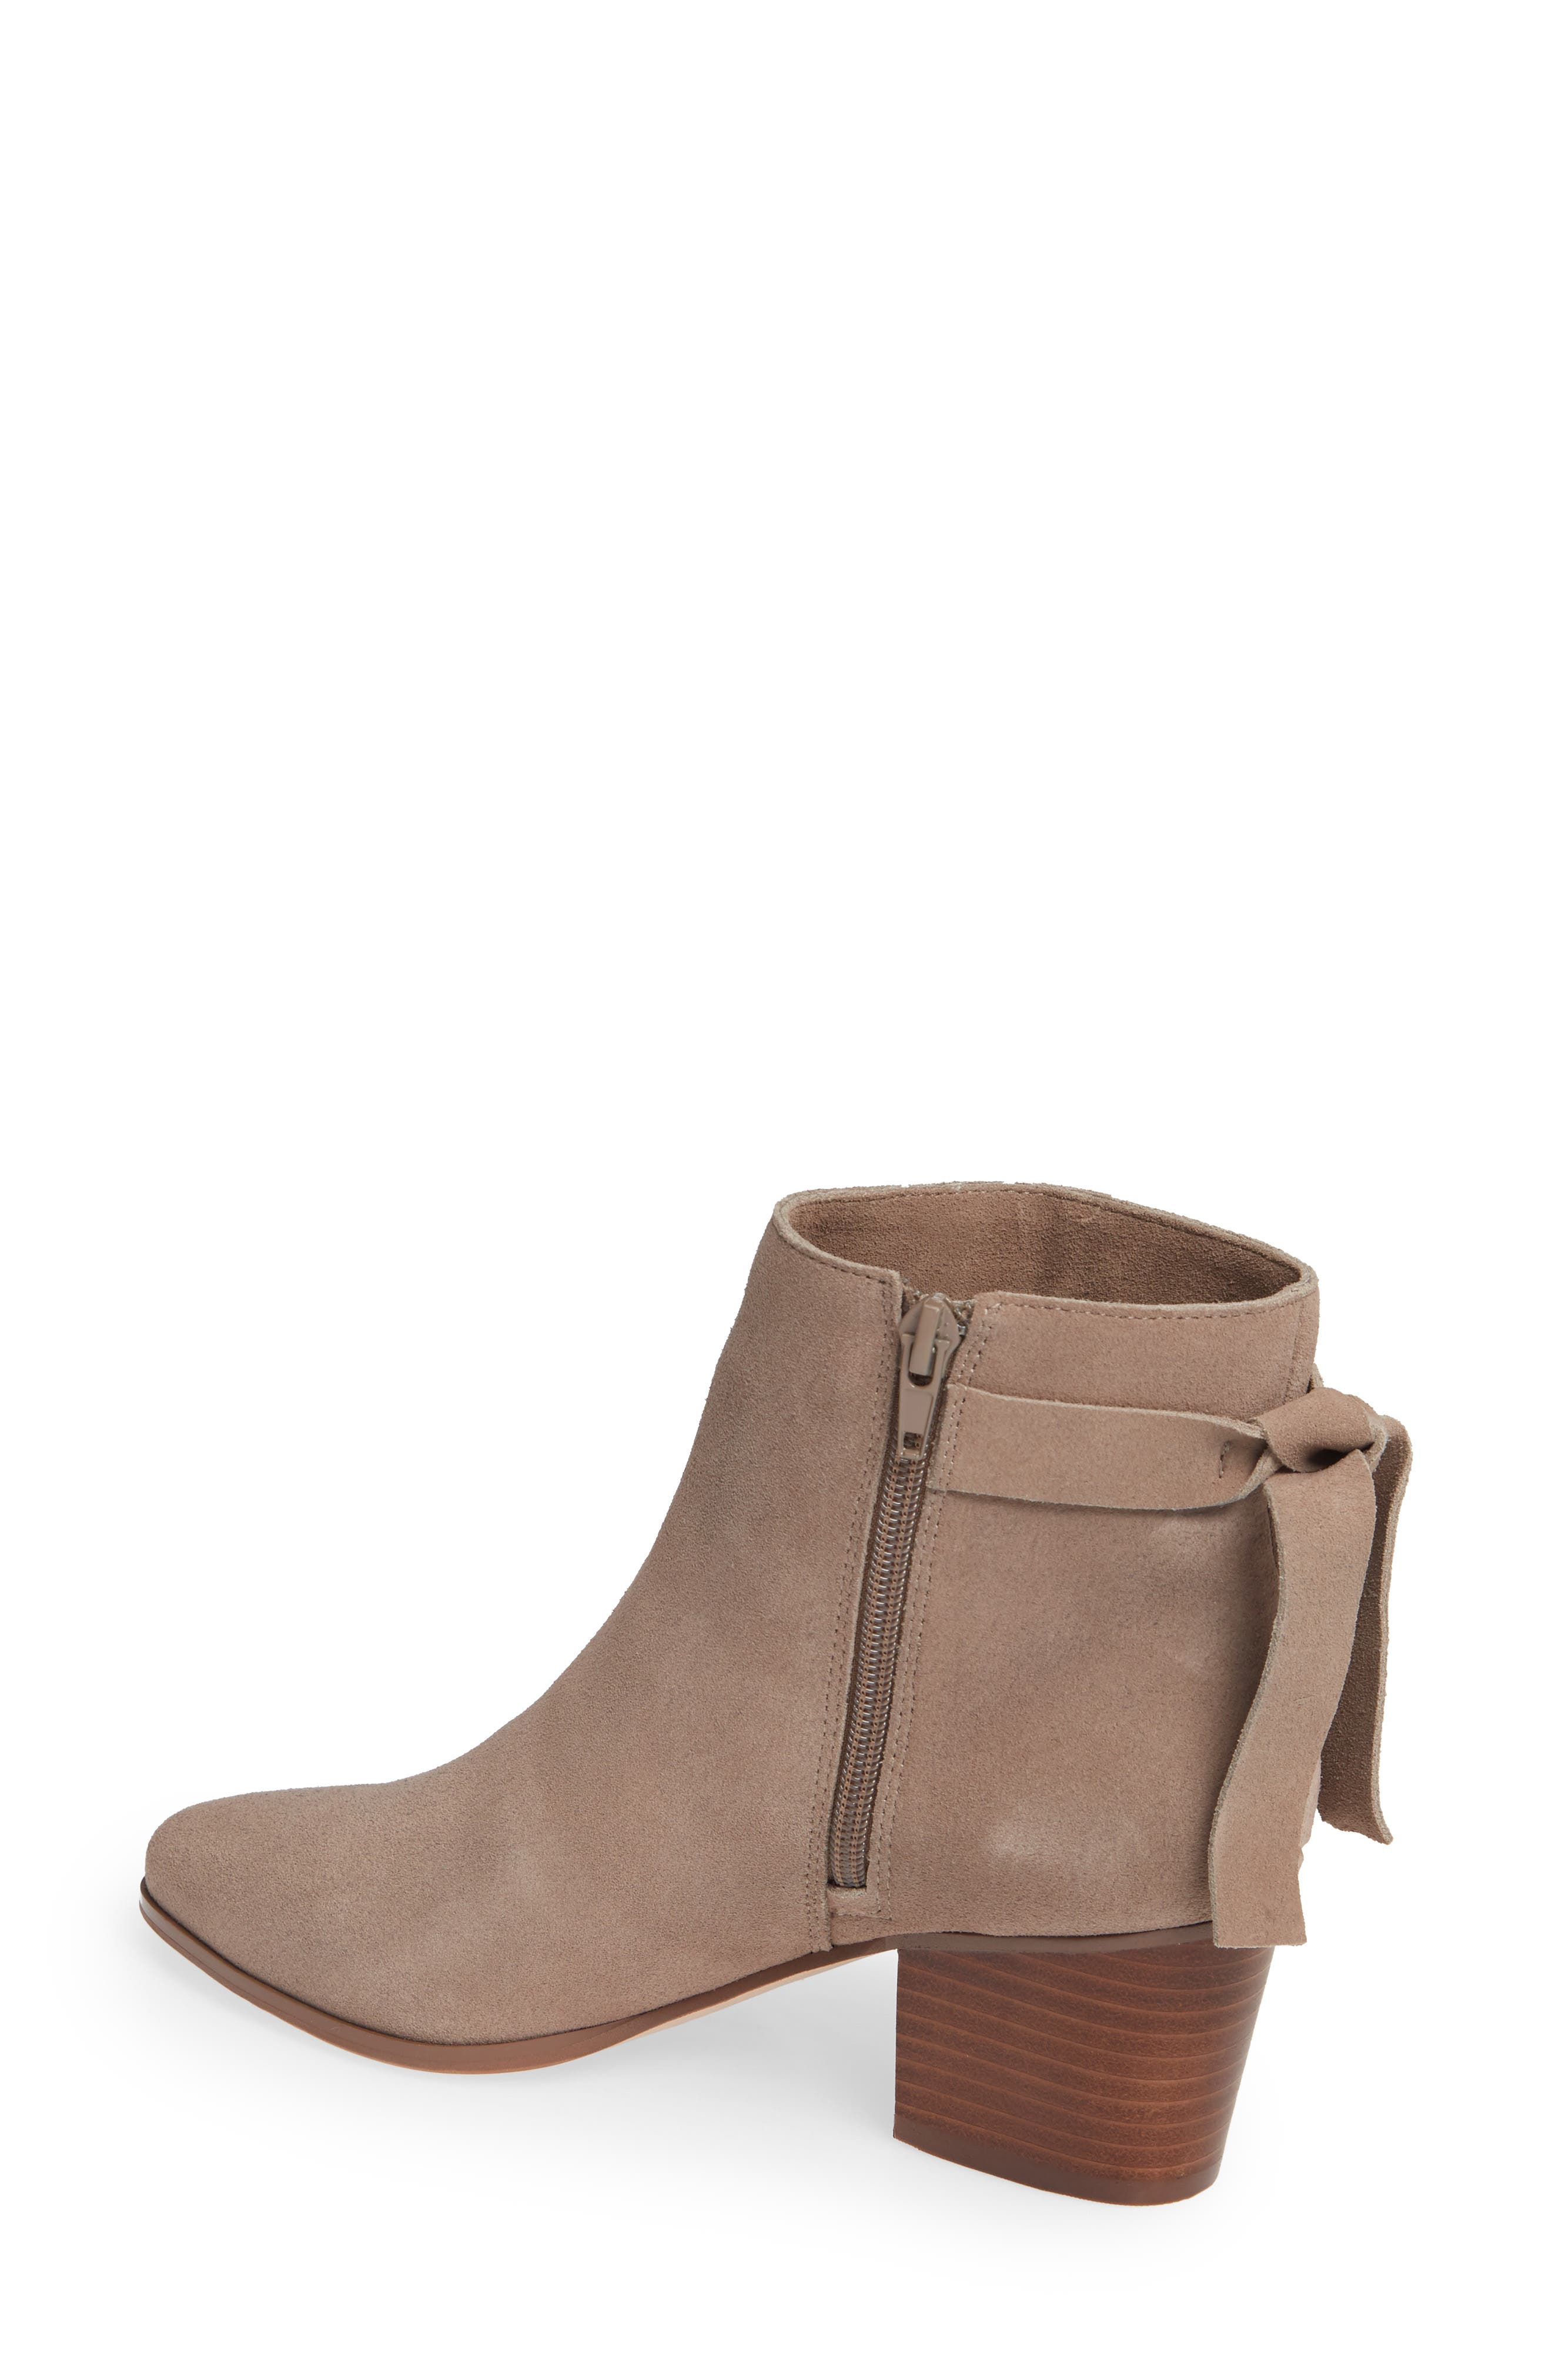 Rhilynn Bootie,                             Alternate thumbnail 2, color,                             FALL TAUPE SUEDE